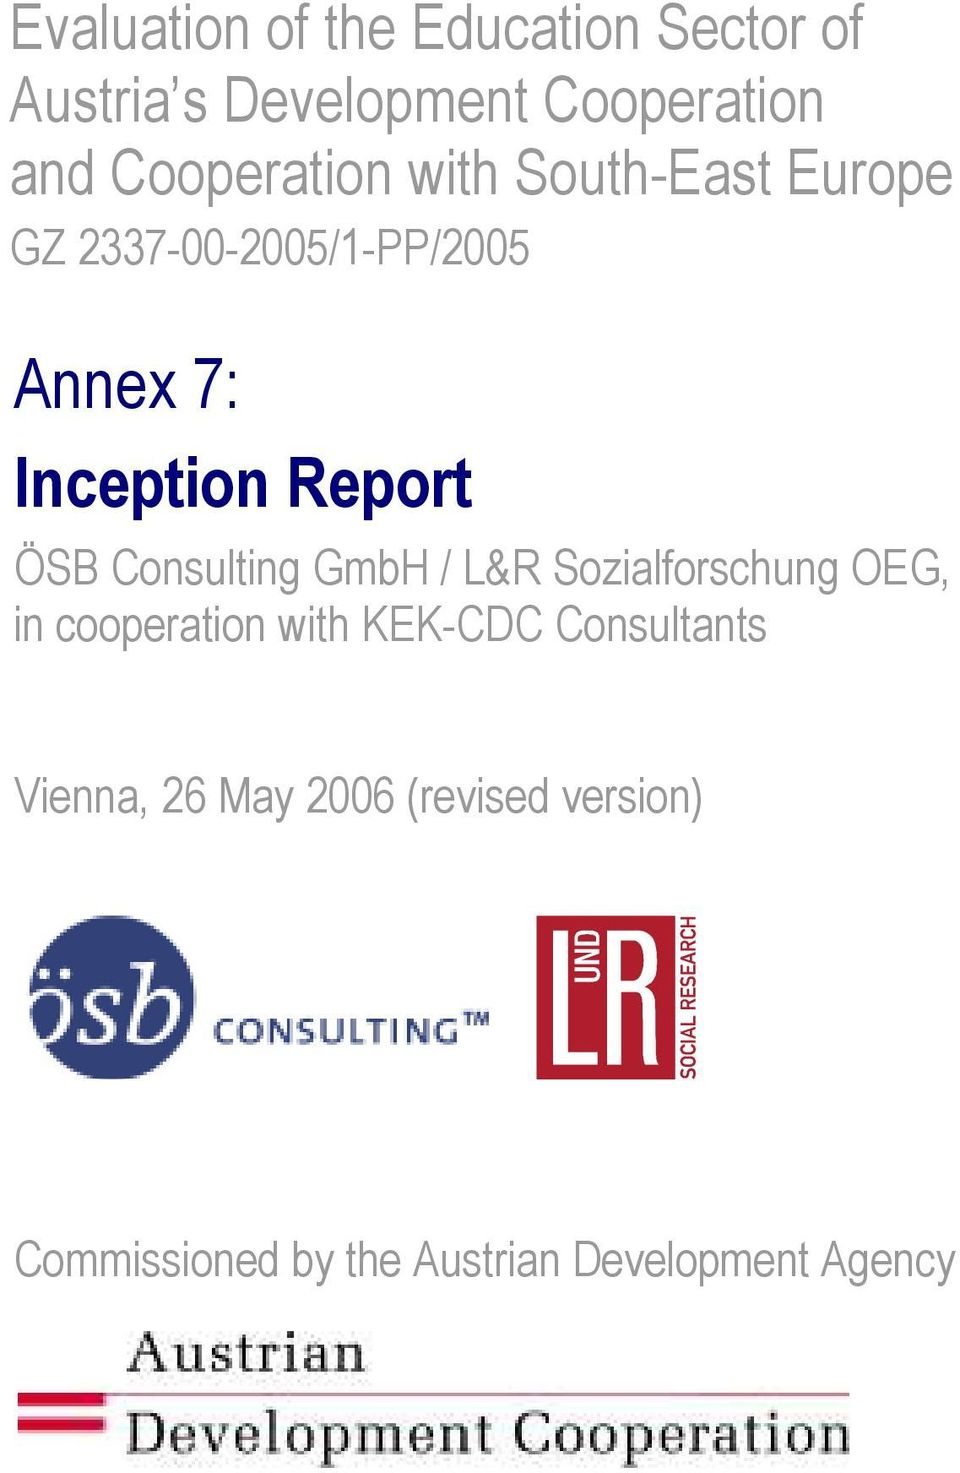 Report ÖSB Consulting GmbH / L&R Sozialforschung OEG, in cooperation with KEK-CDC